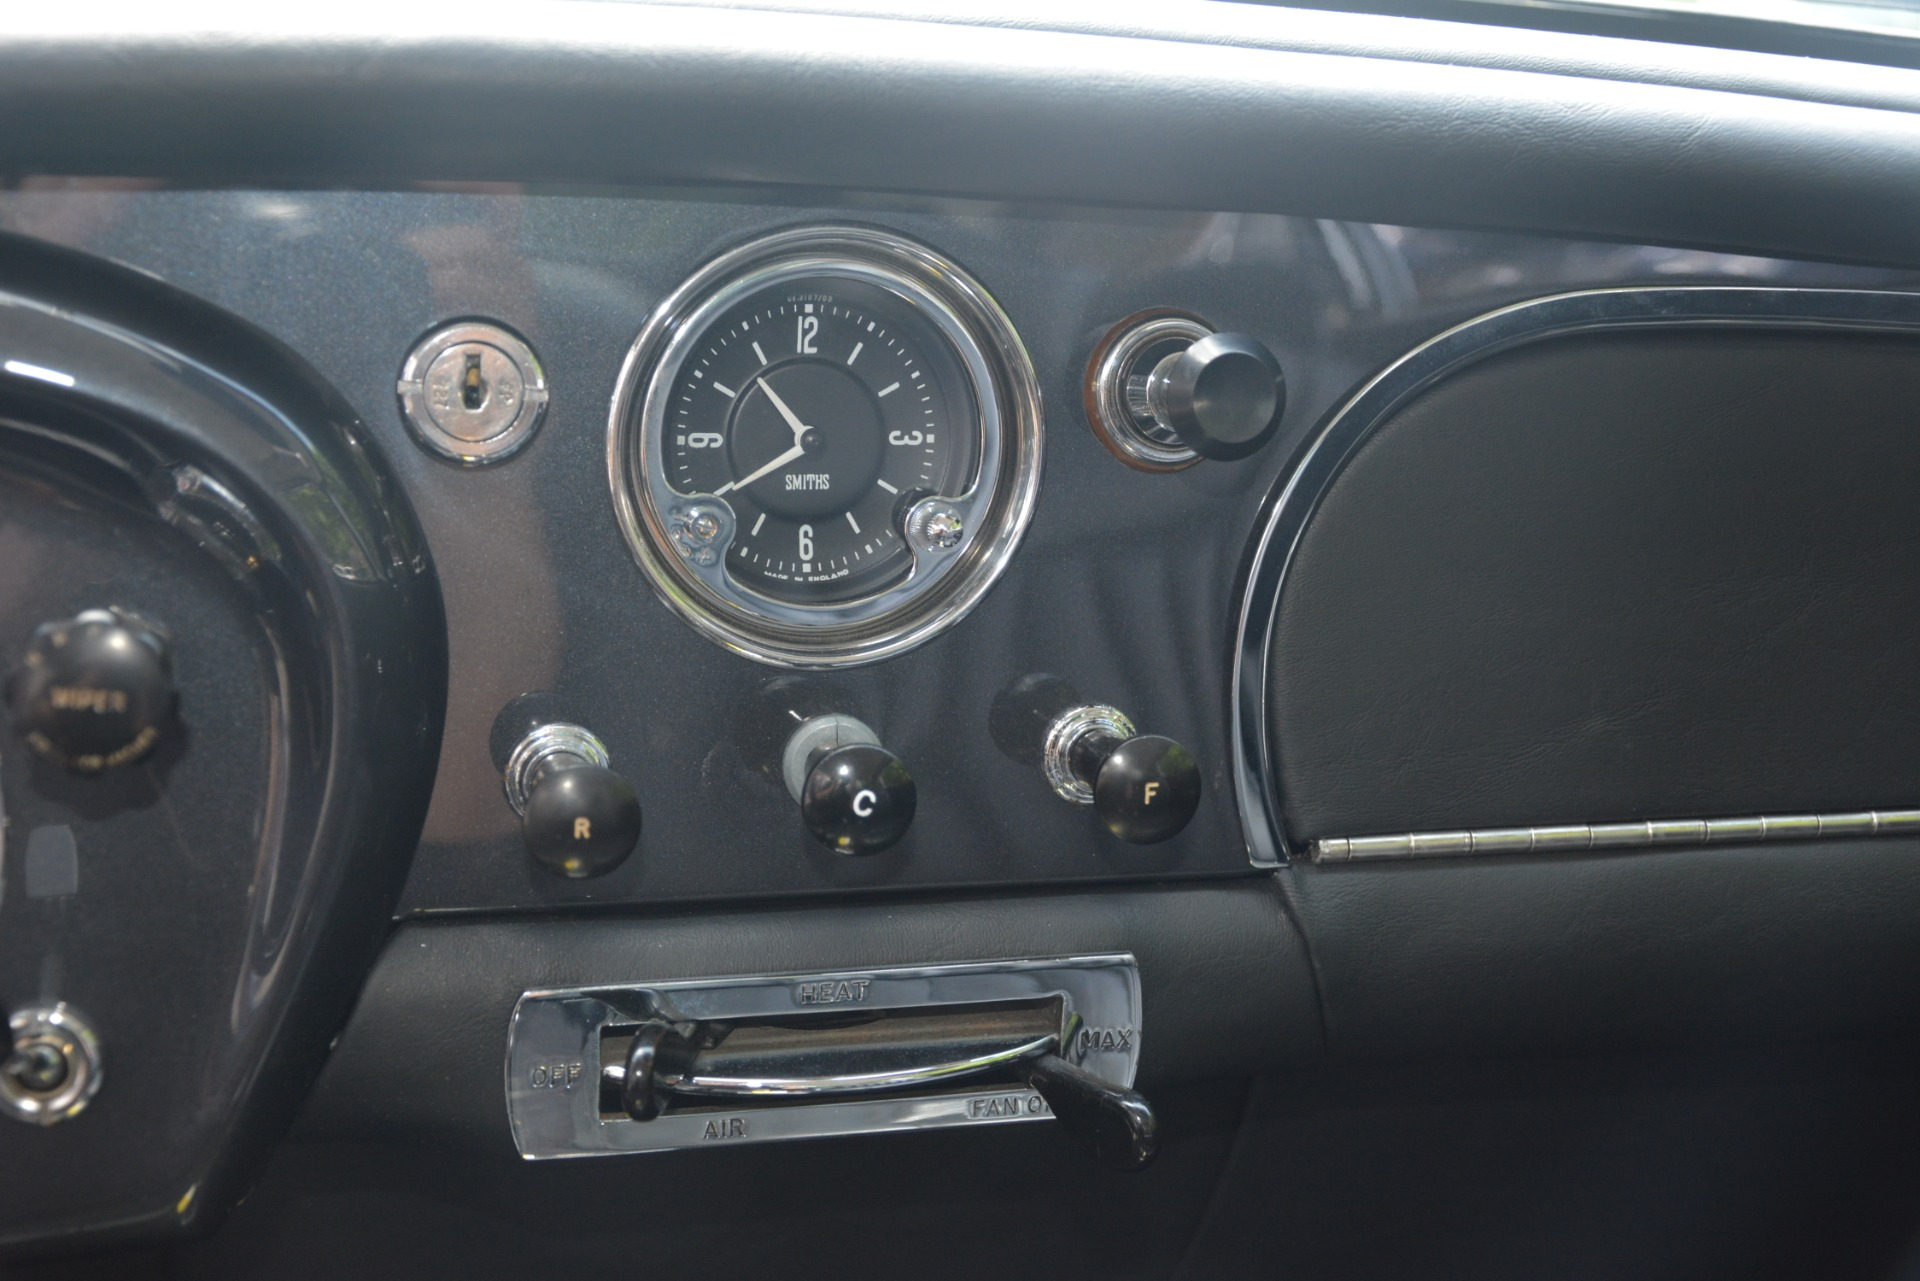 Used 1961 Aston Martin DB4 Series IV Coupe For Sale In Greenwich, CT 3186_p30